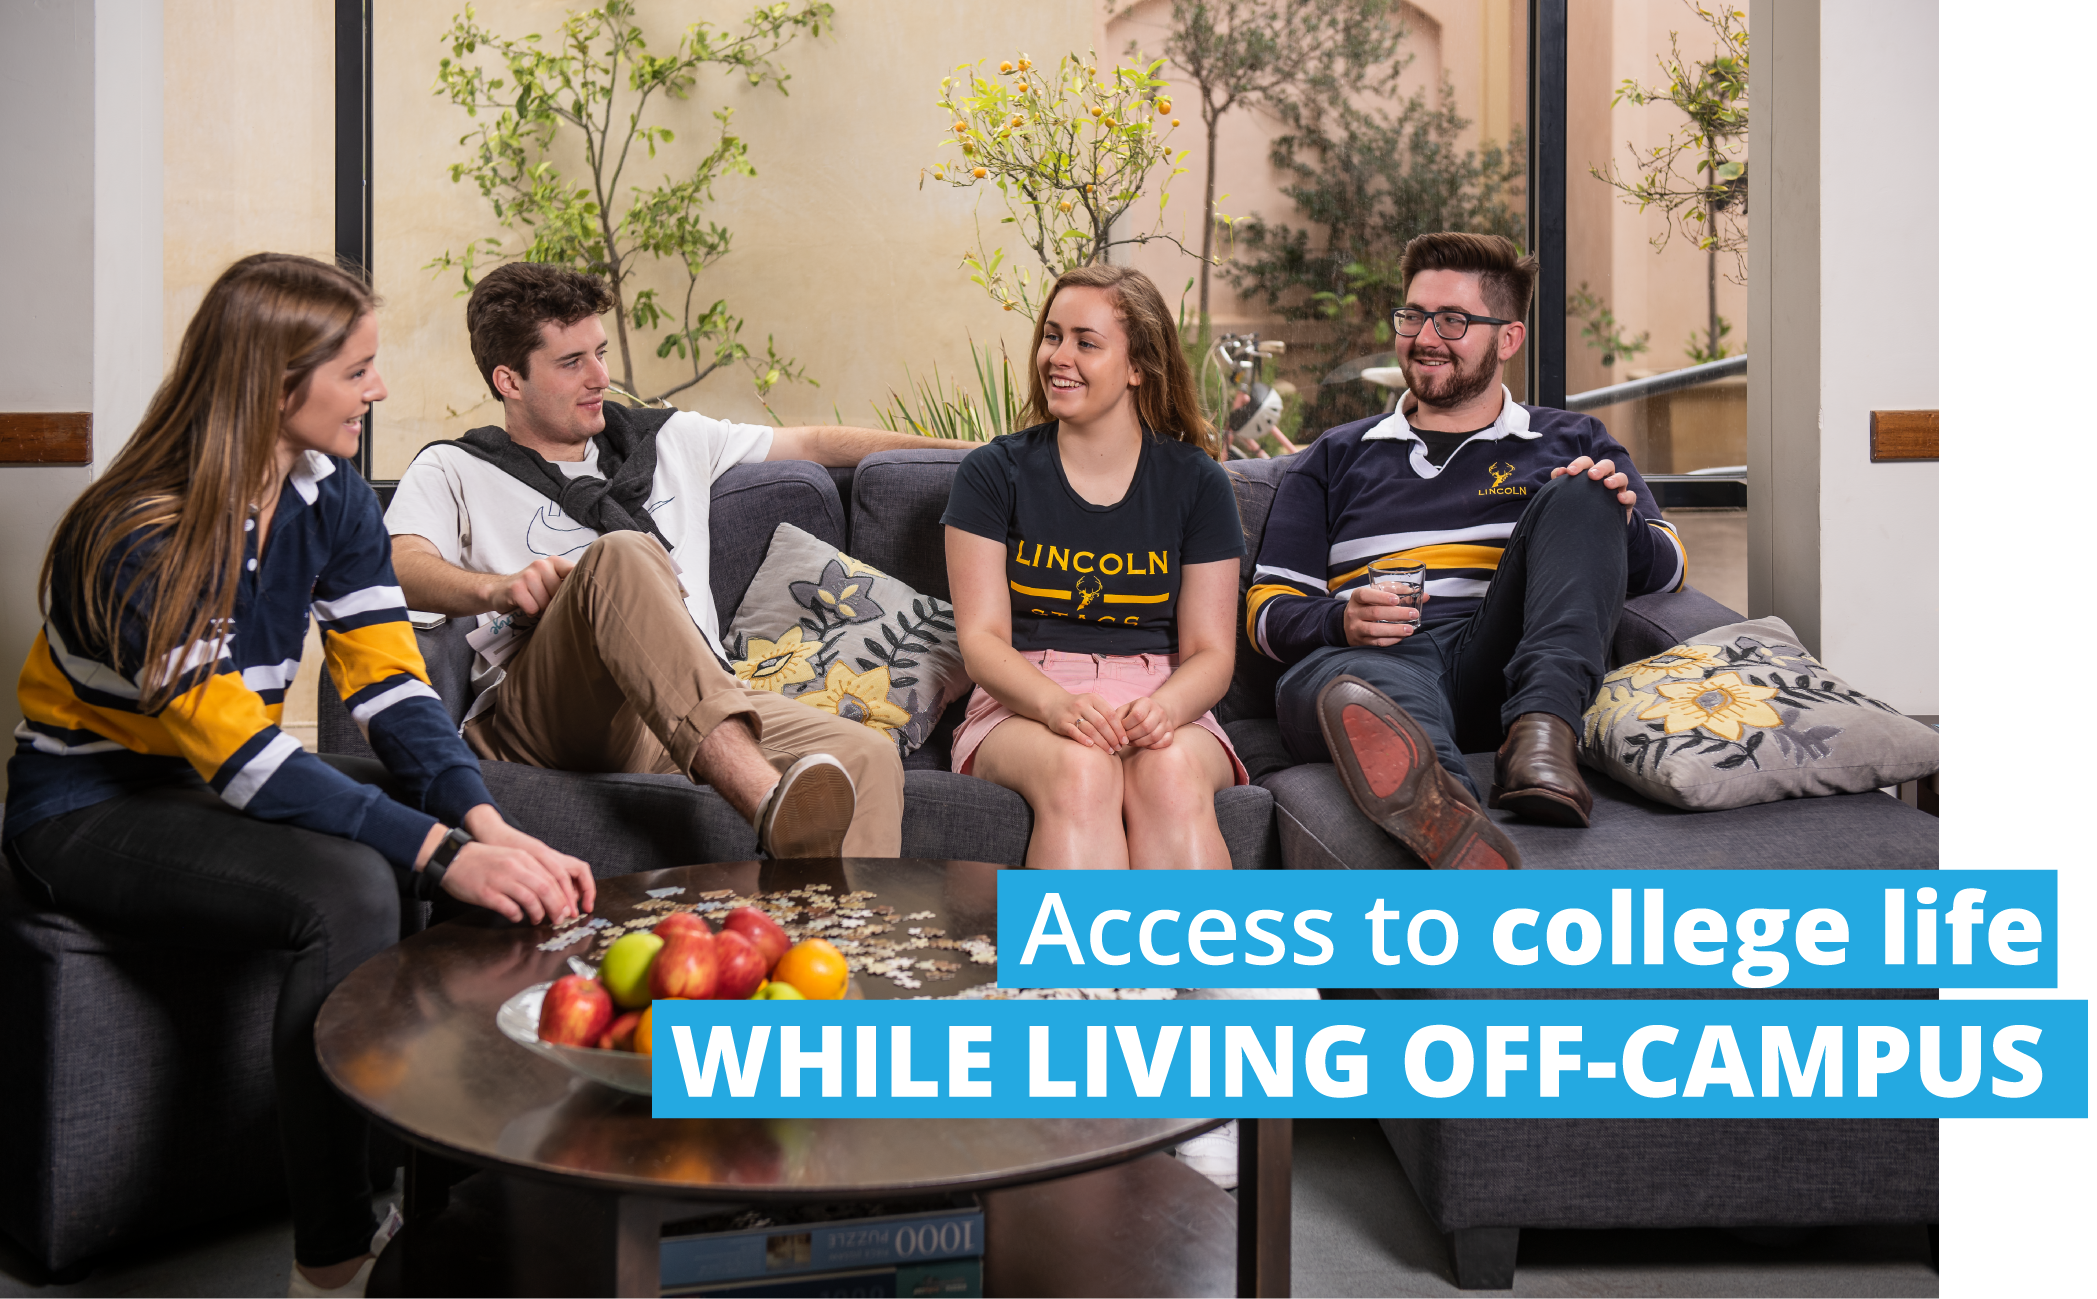 Access to college life WHILE LIVING OFF-CAMPUS